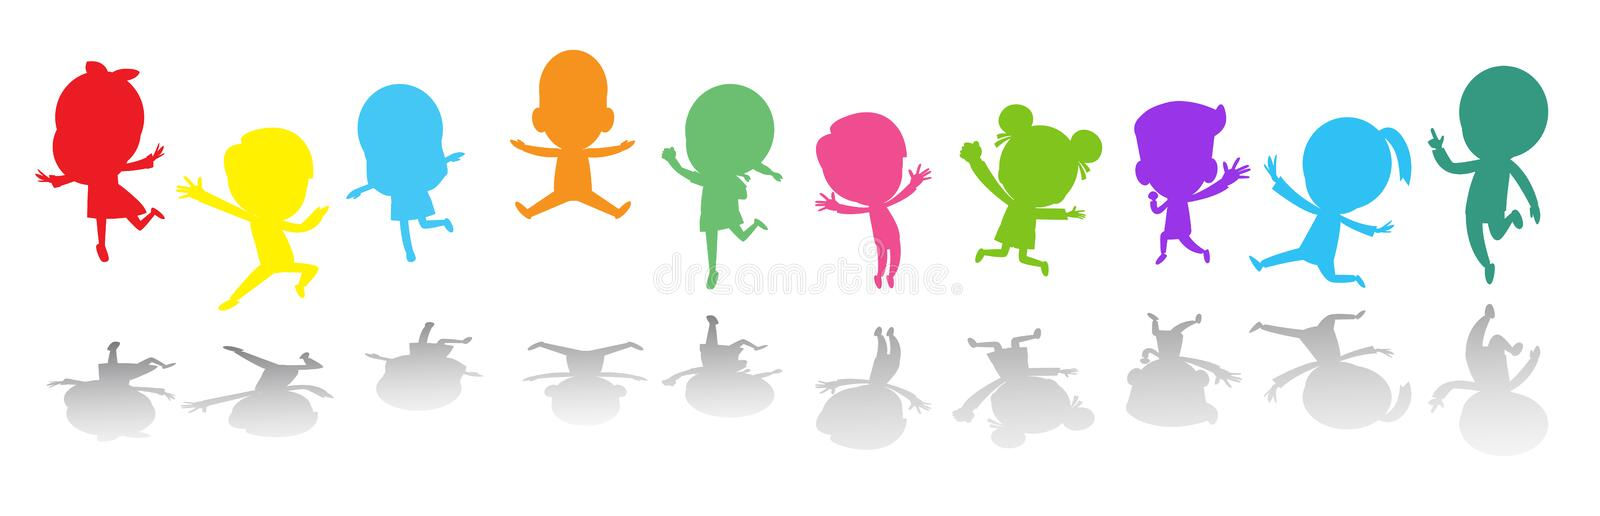 Cute kids playing jumping colorful ,Child silhouettes dancing, children silhouettes jumping on white background Vector. Illustration royalty free illustration